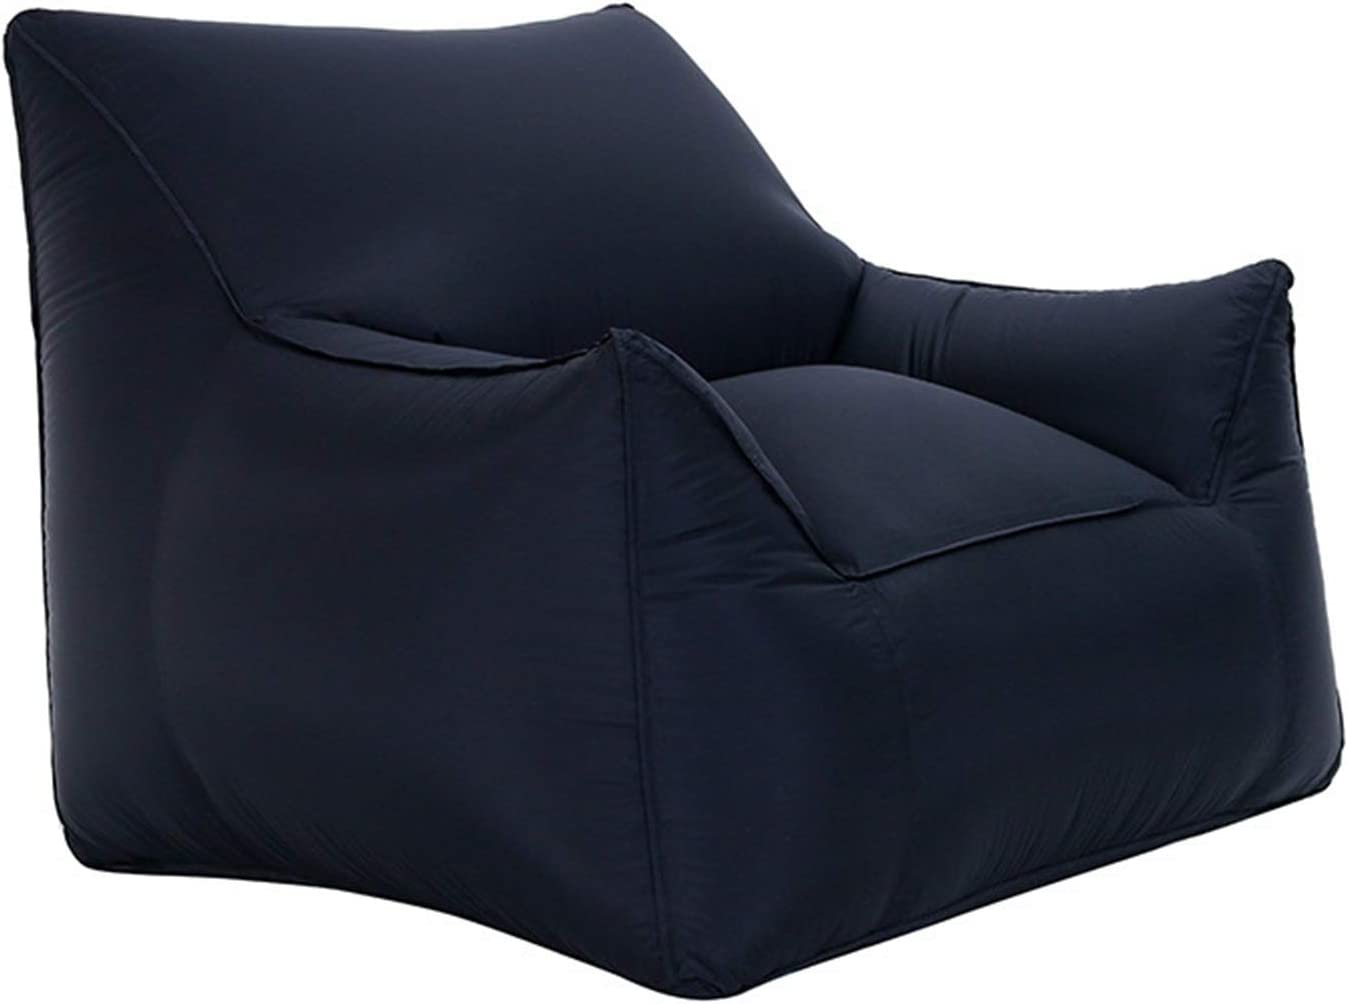 LZRDZSW Outdoor Portable Single List price Inflatable Max 81% OFF Bag Chair Moist Bean